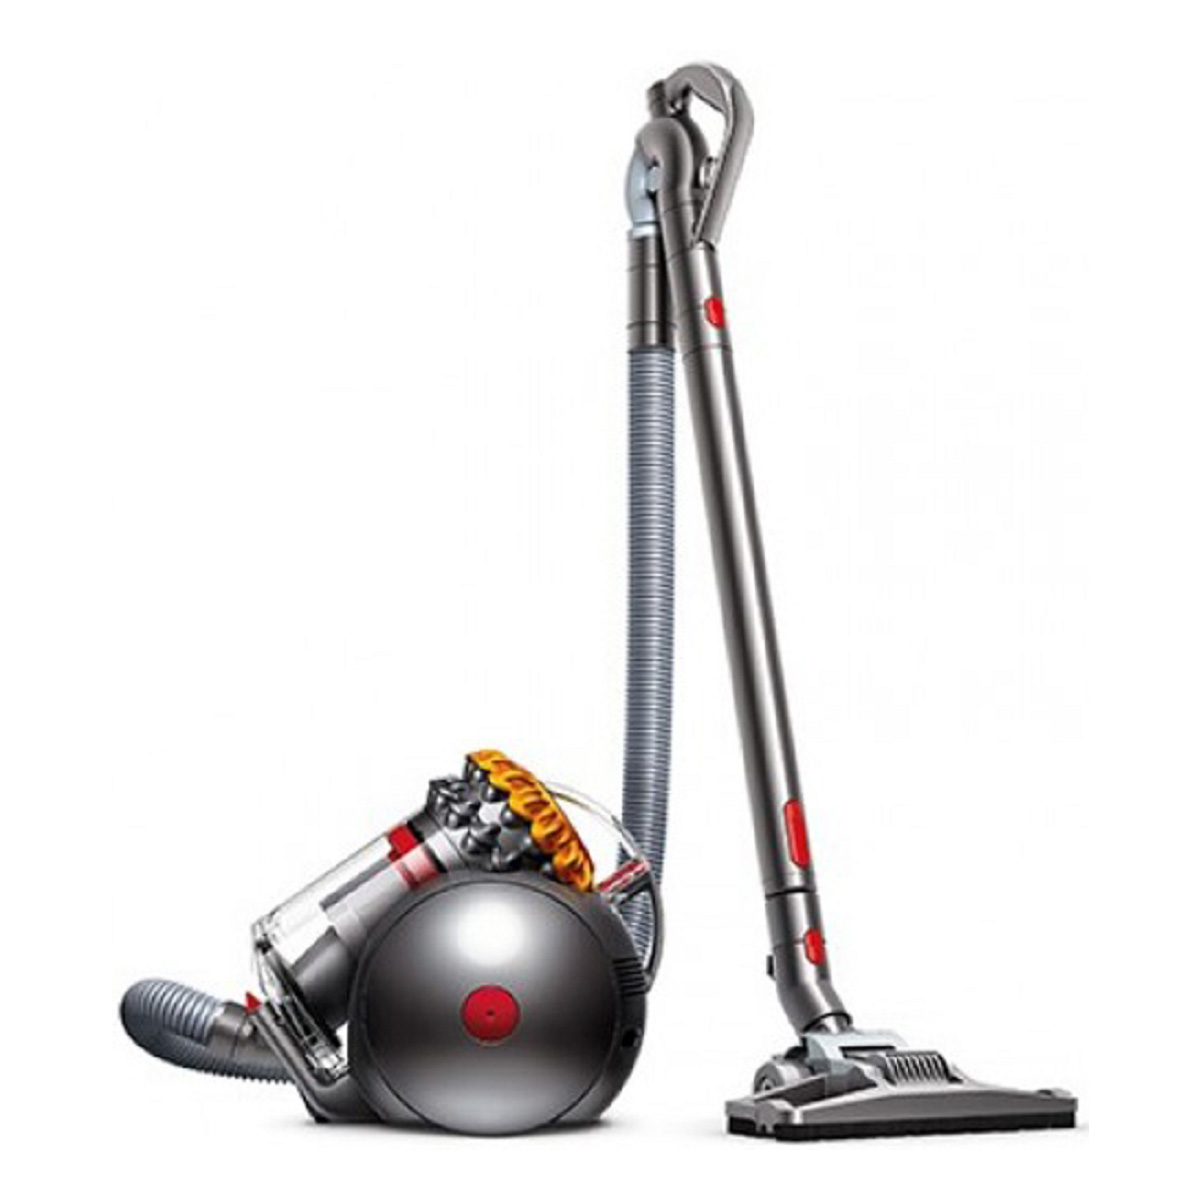 Dyson 214886-01 Big Ball Origin Barrel Vacuum Cleaner